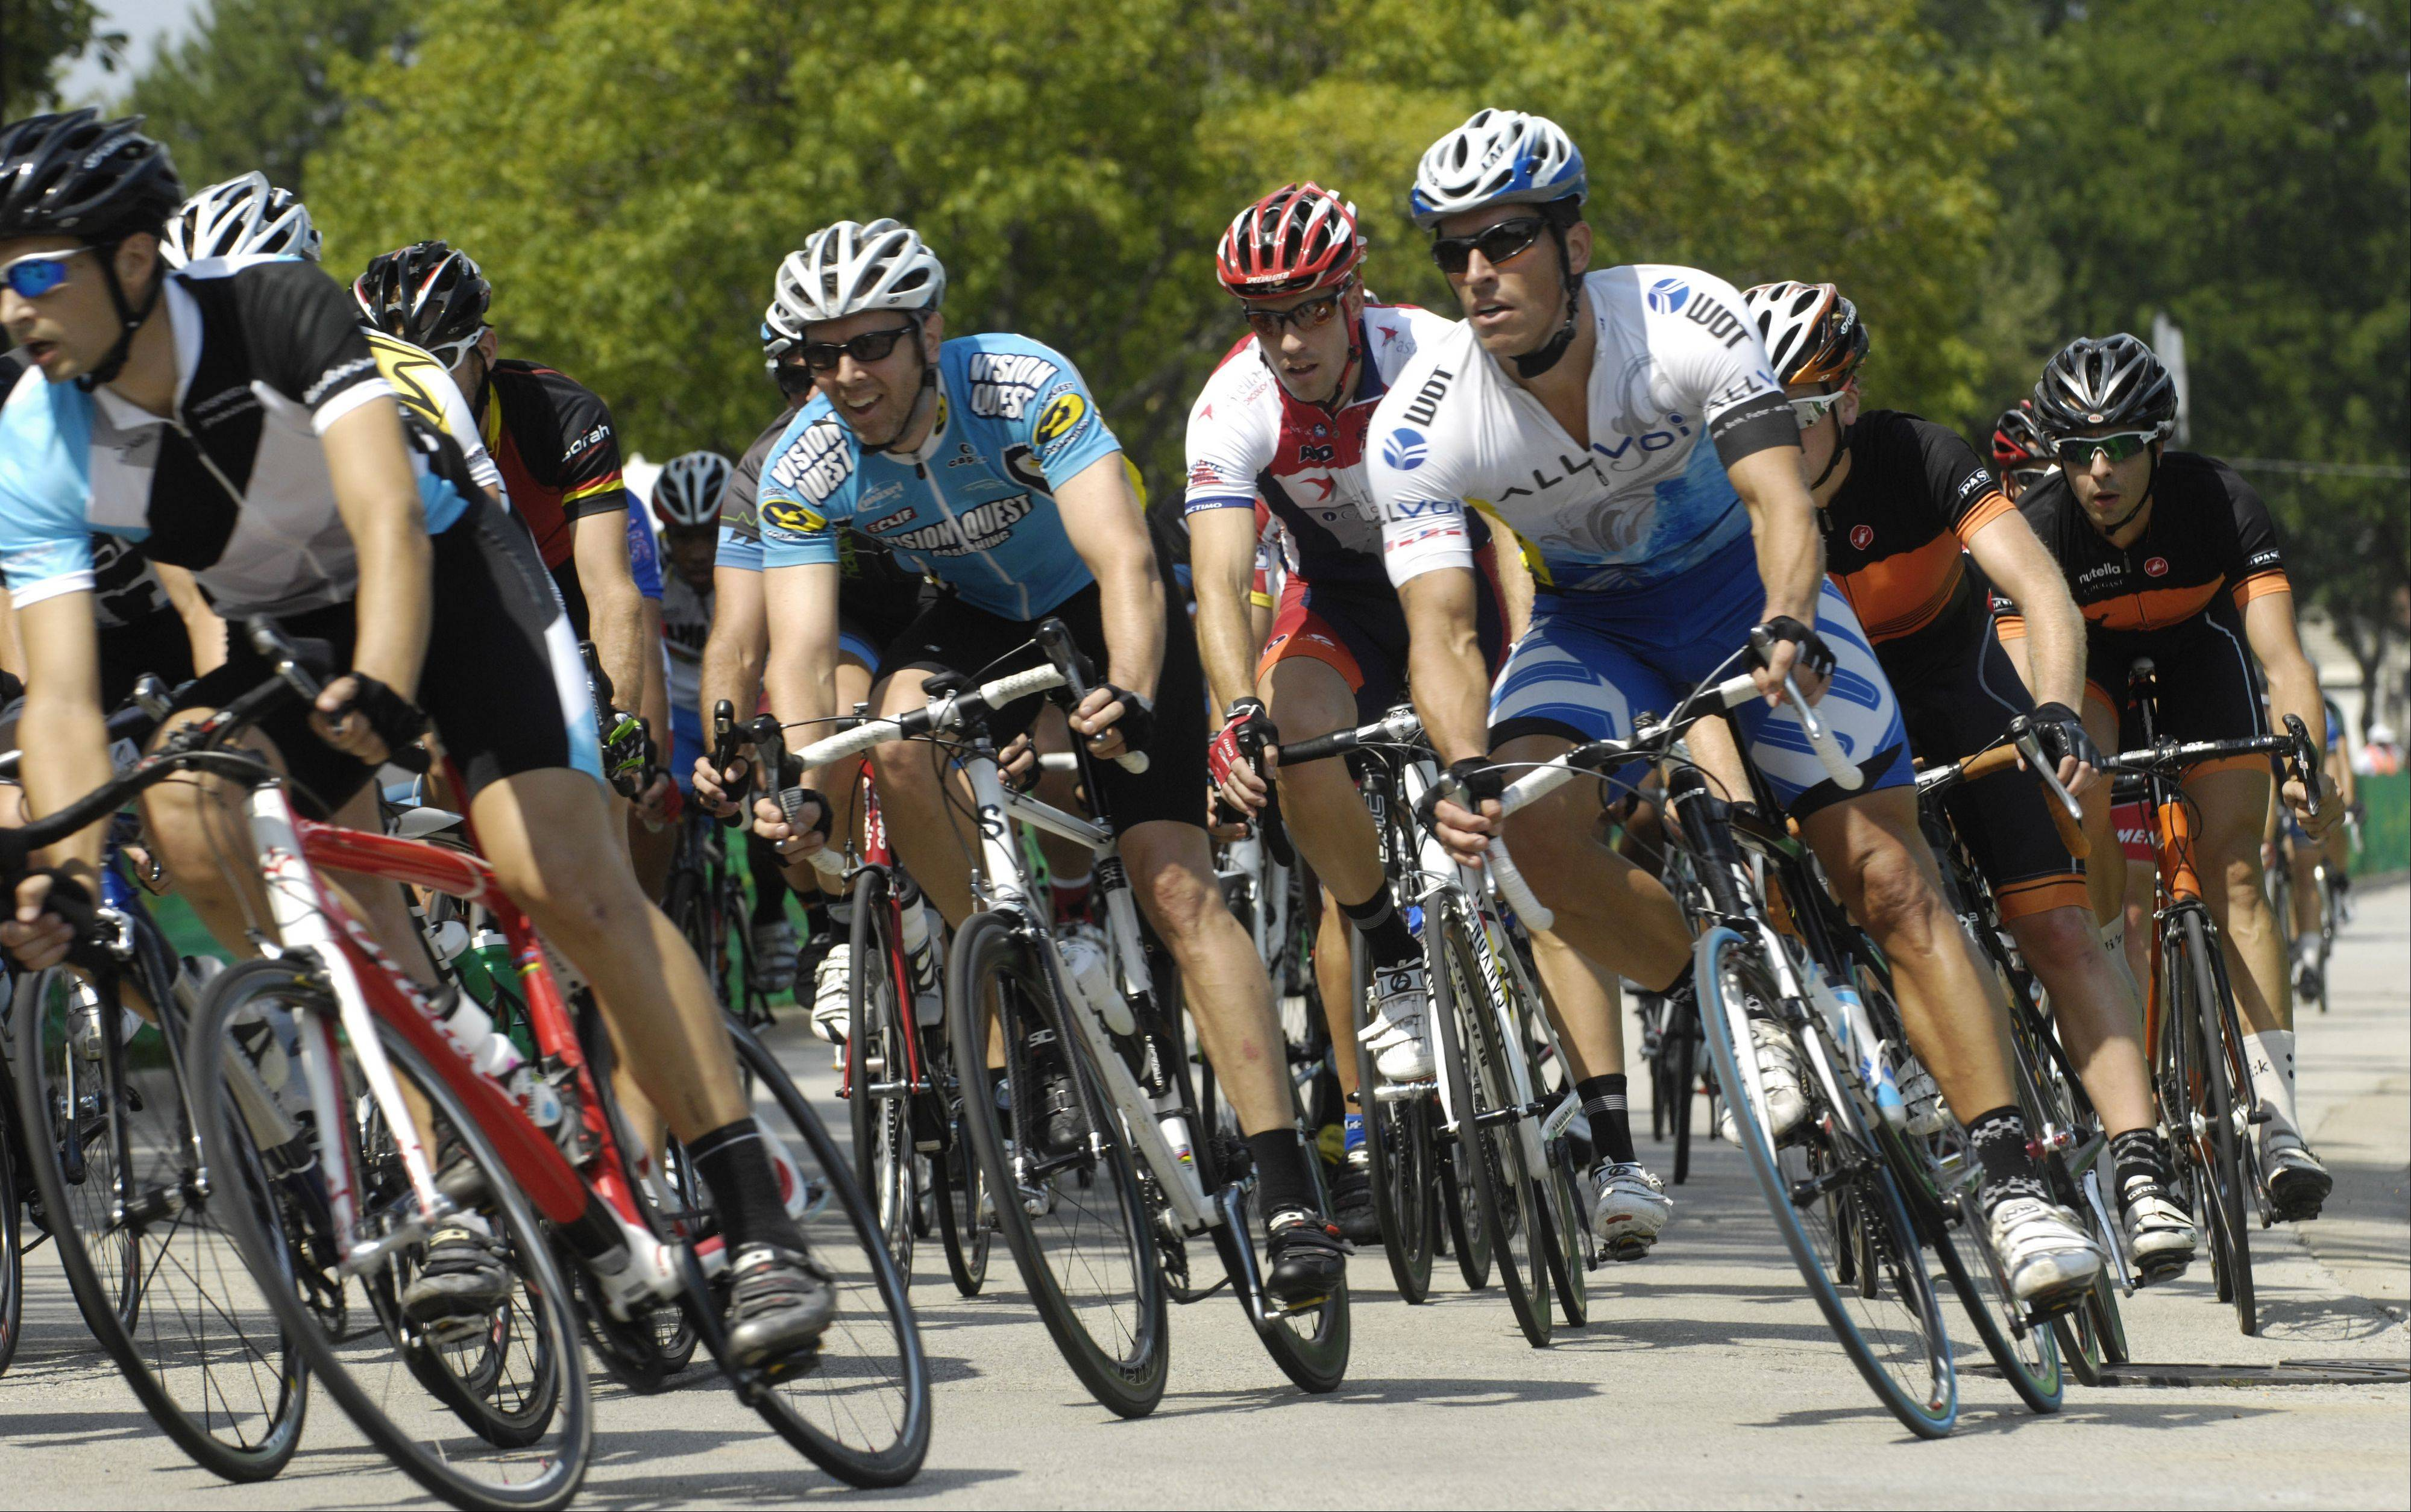 Riders compete in the Rocco Vino's Category 3 during the Tour of Elk Grove Saturday.